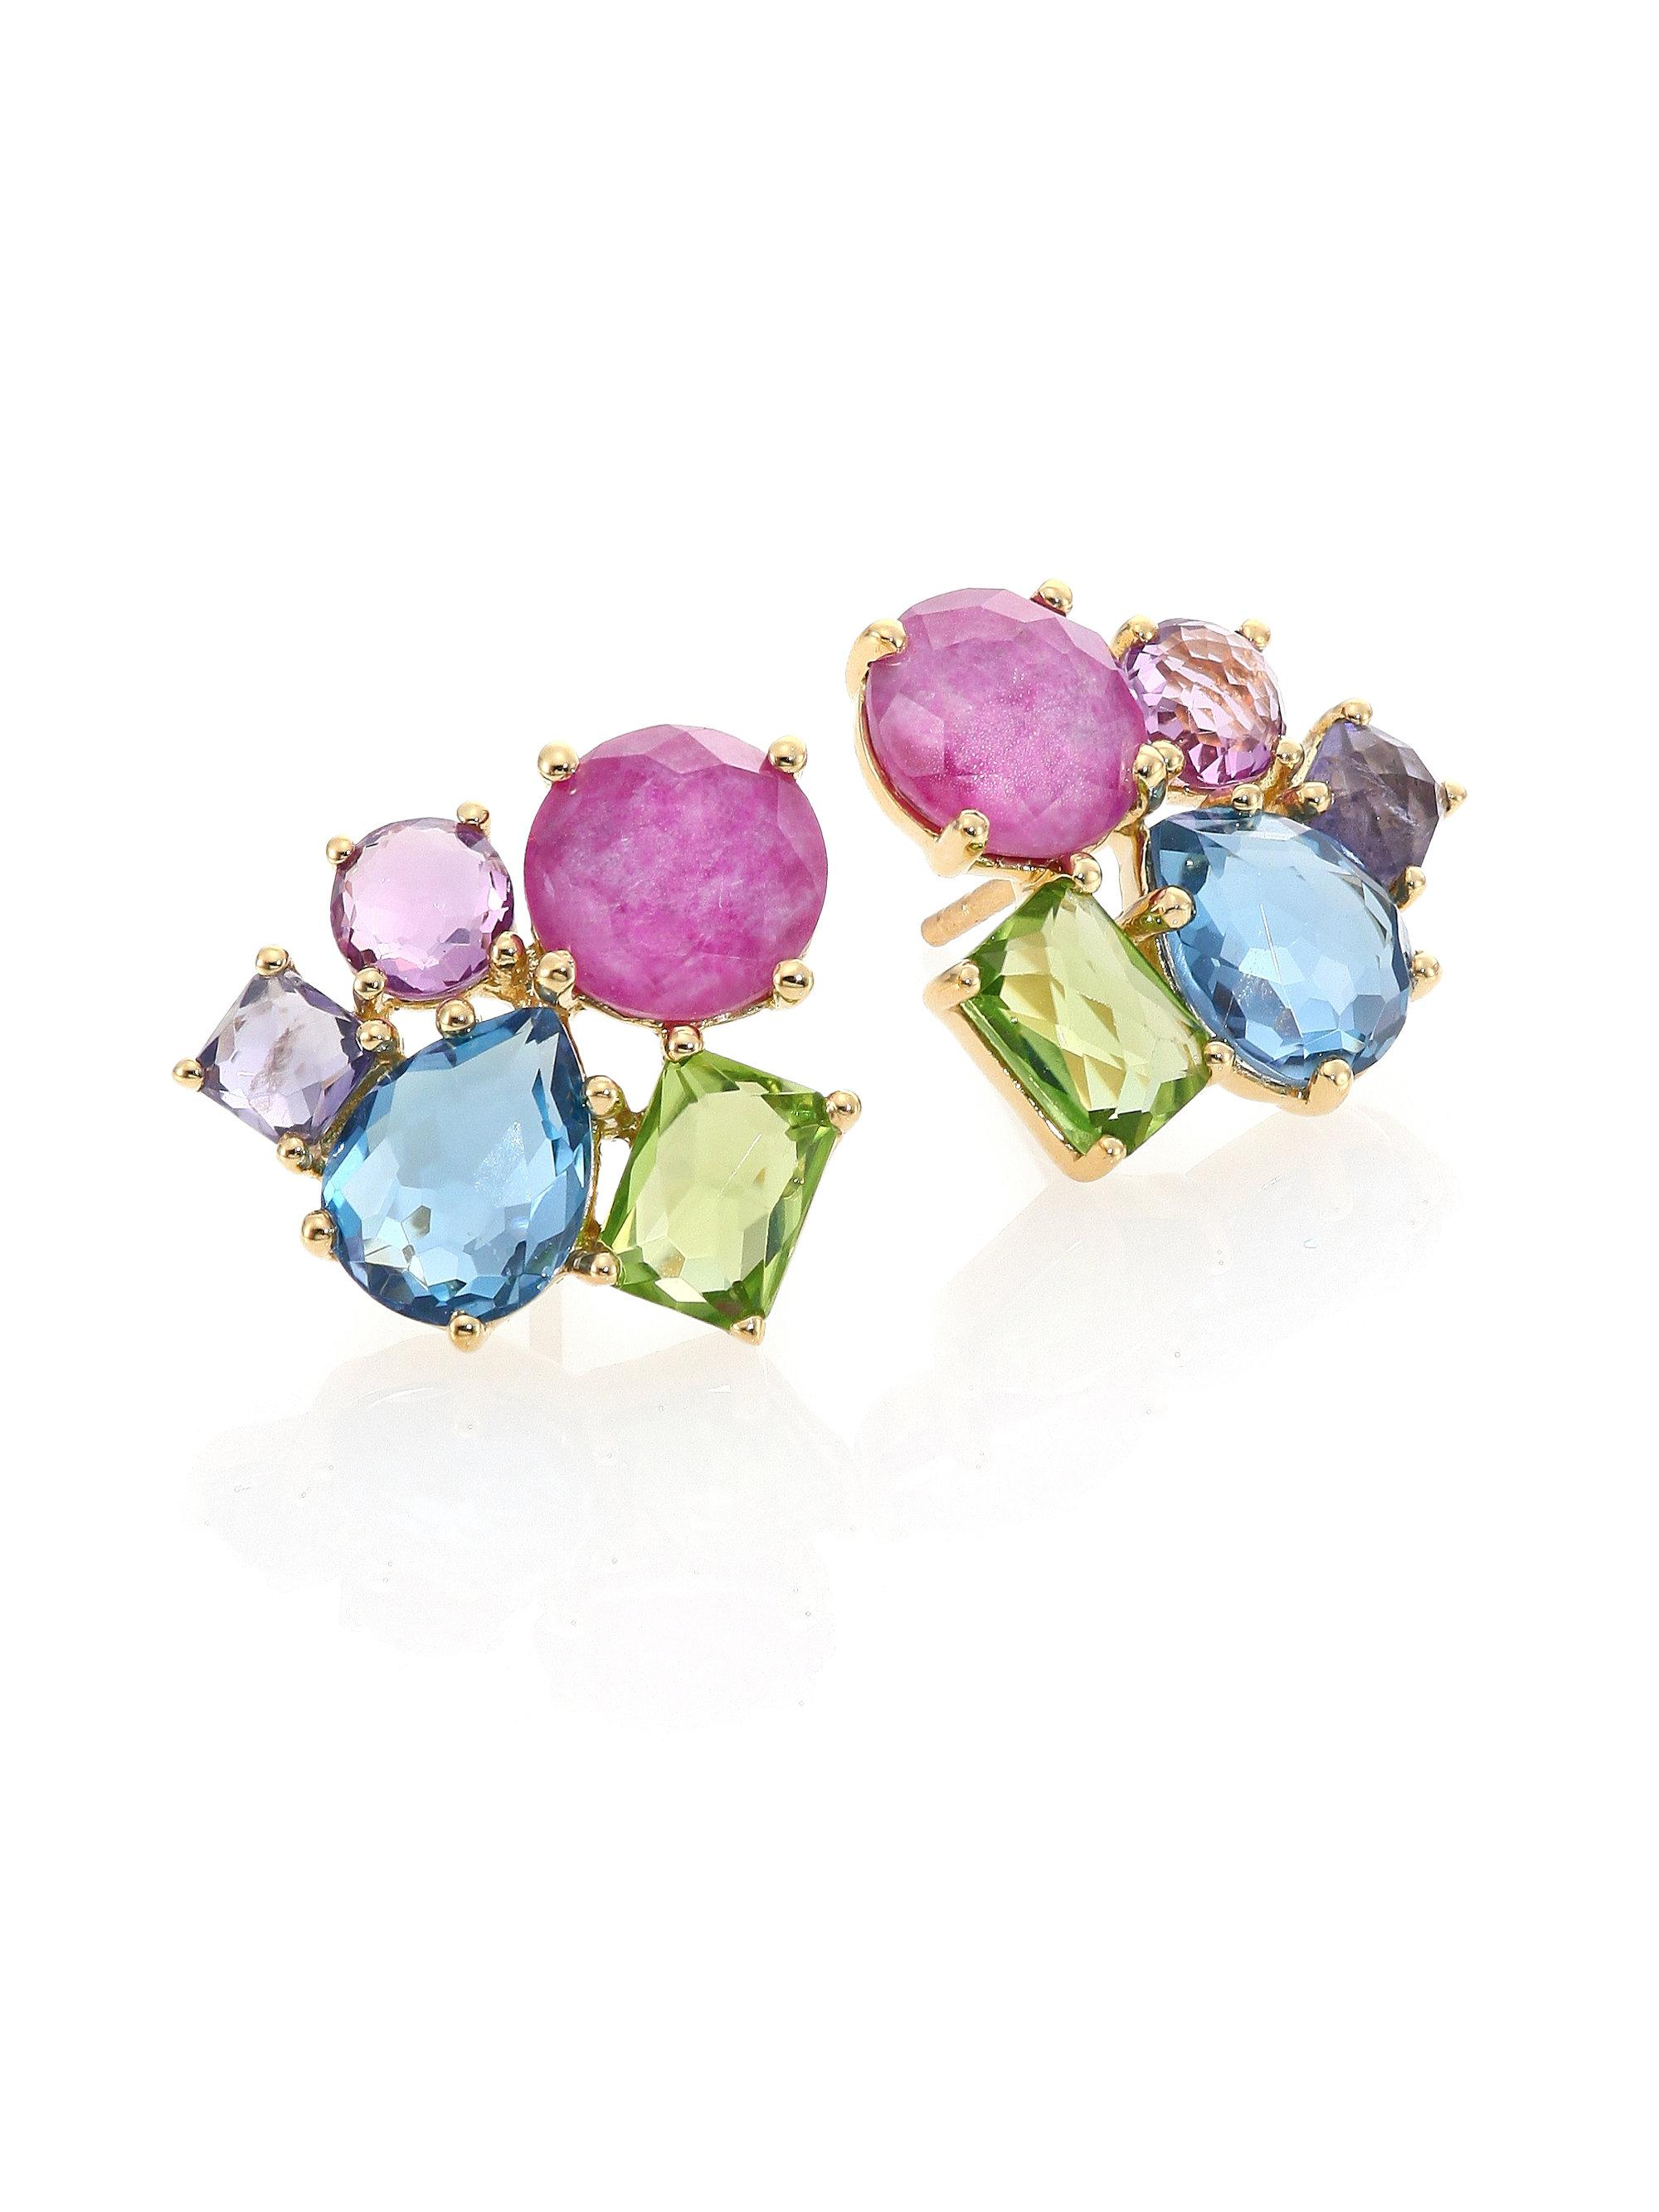 and earrings studded pairs dropping spectacular stones tear a pair pin pearl multicolor stone one the of multi most gemstone coloured darling with